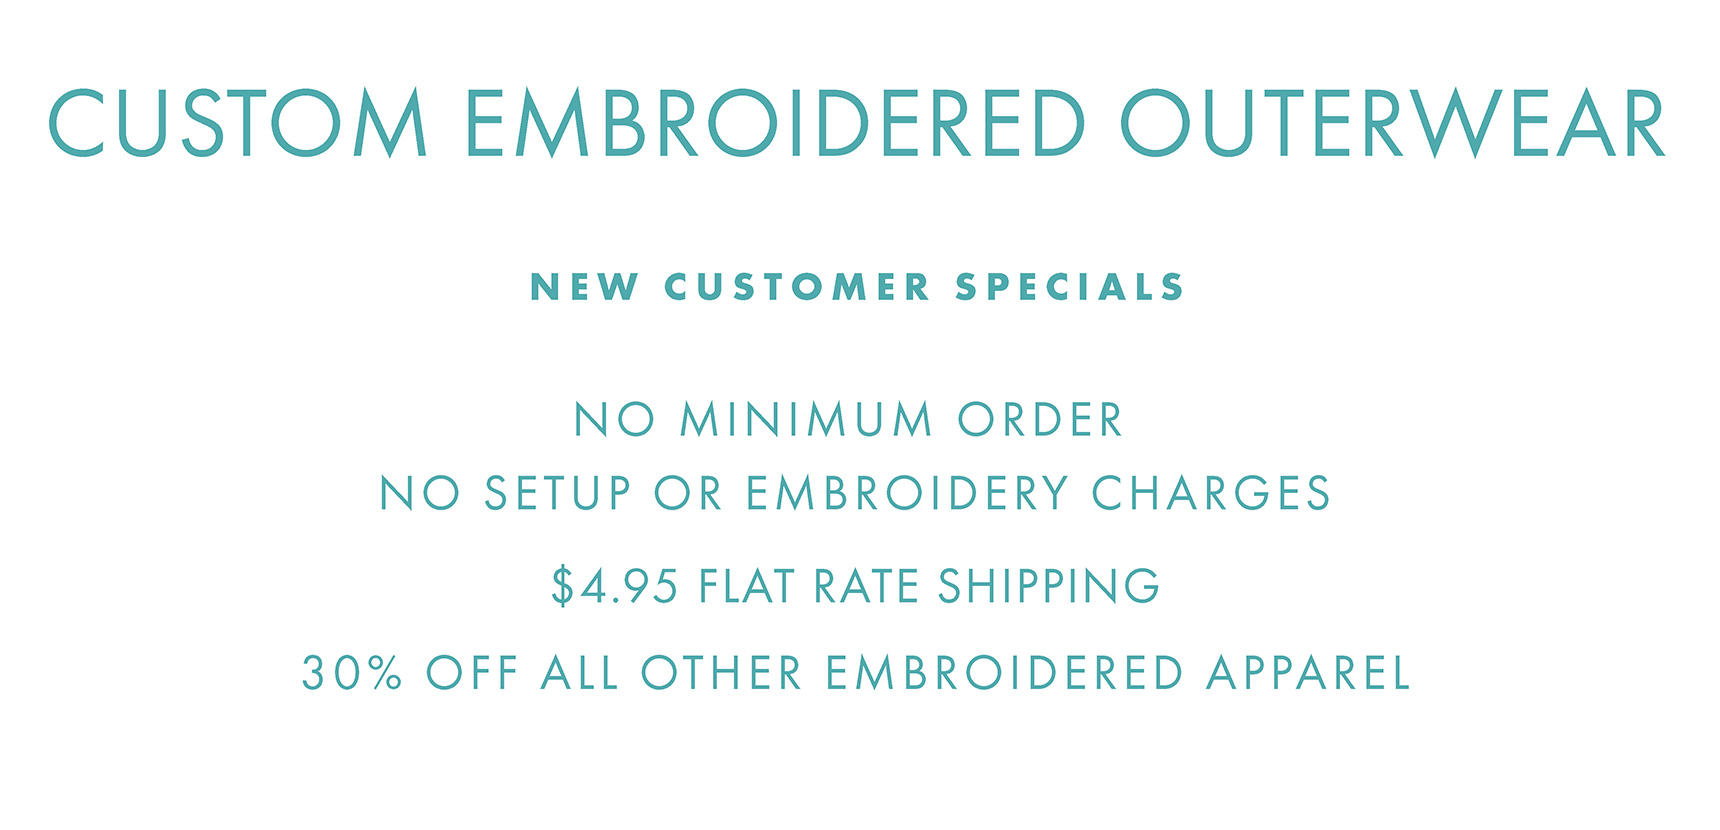 Custom Embroidered Outerwear Apparel, no setup or embroidery charges, shipping just $4.95 per order